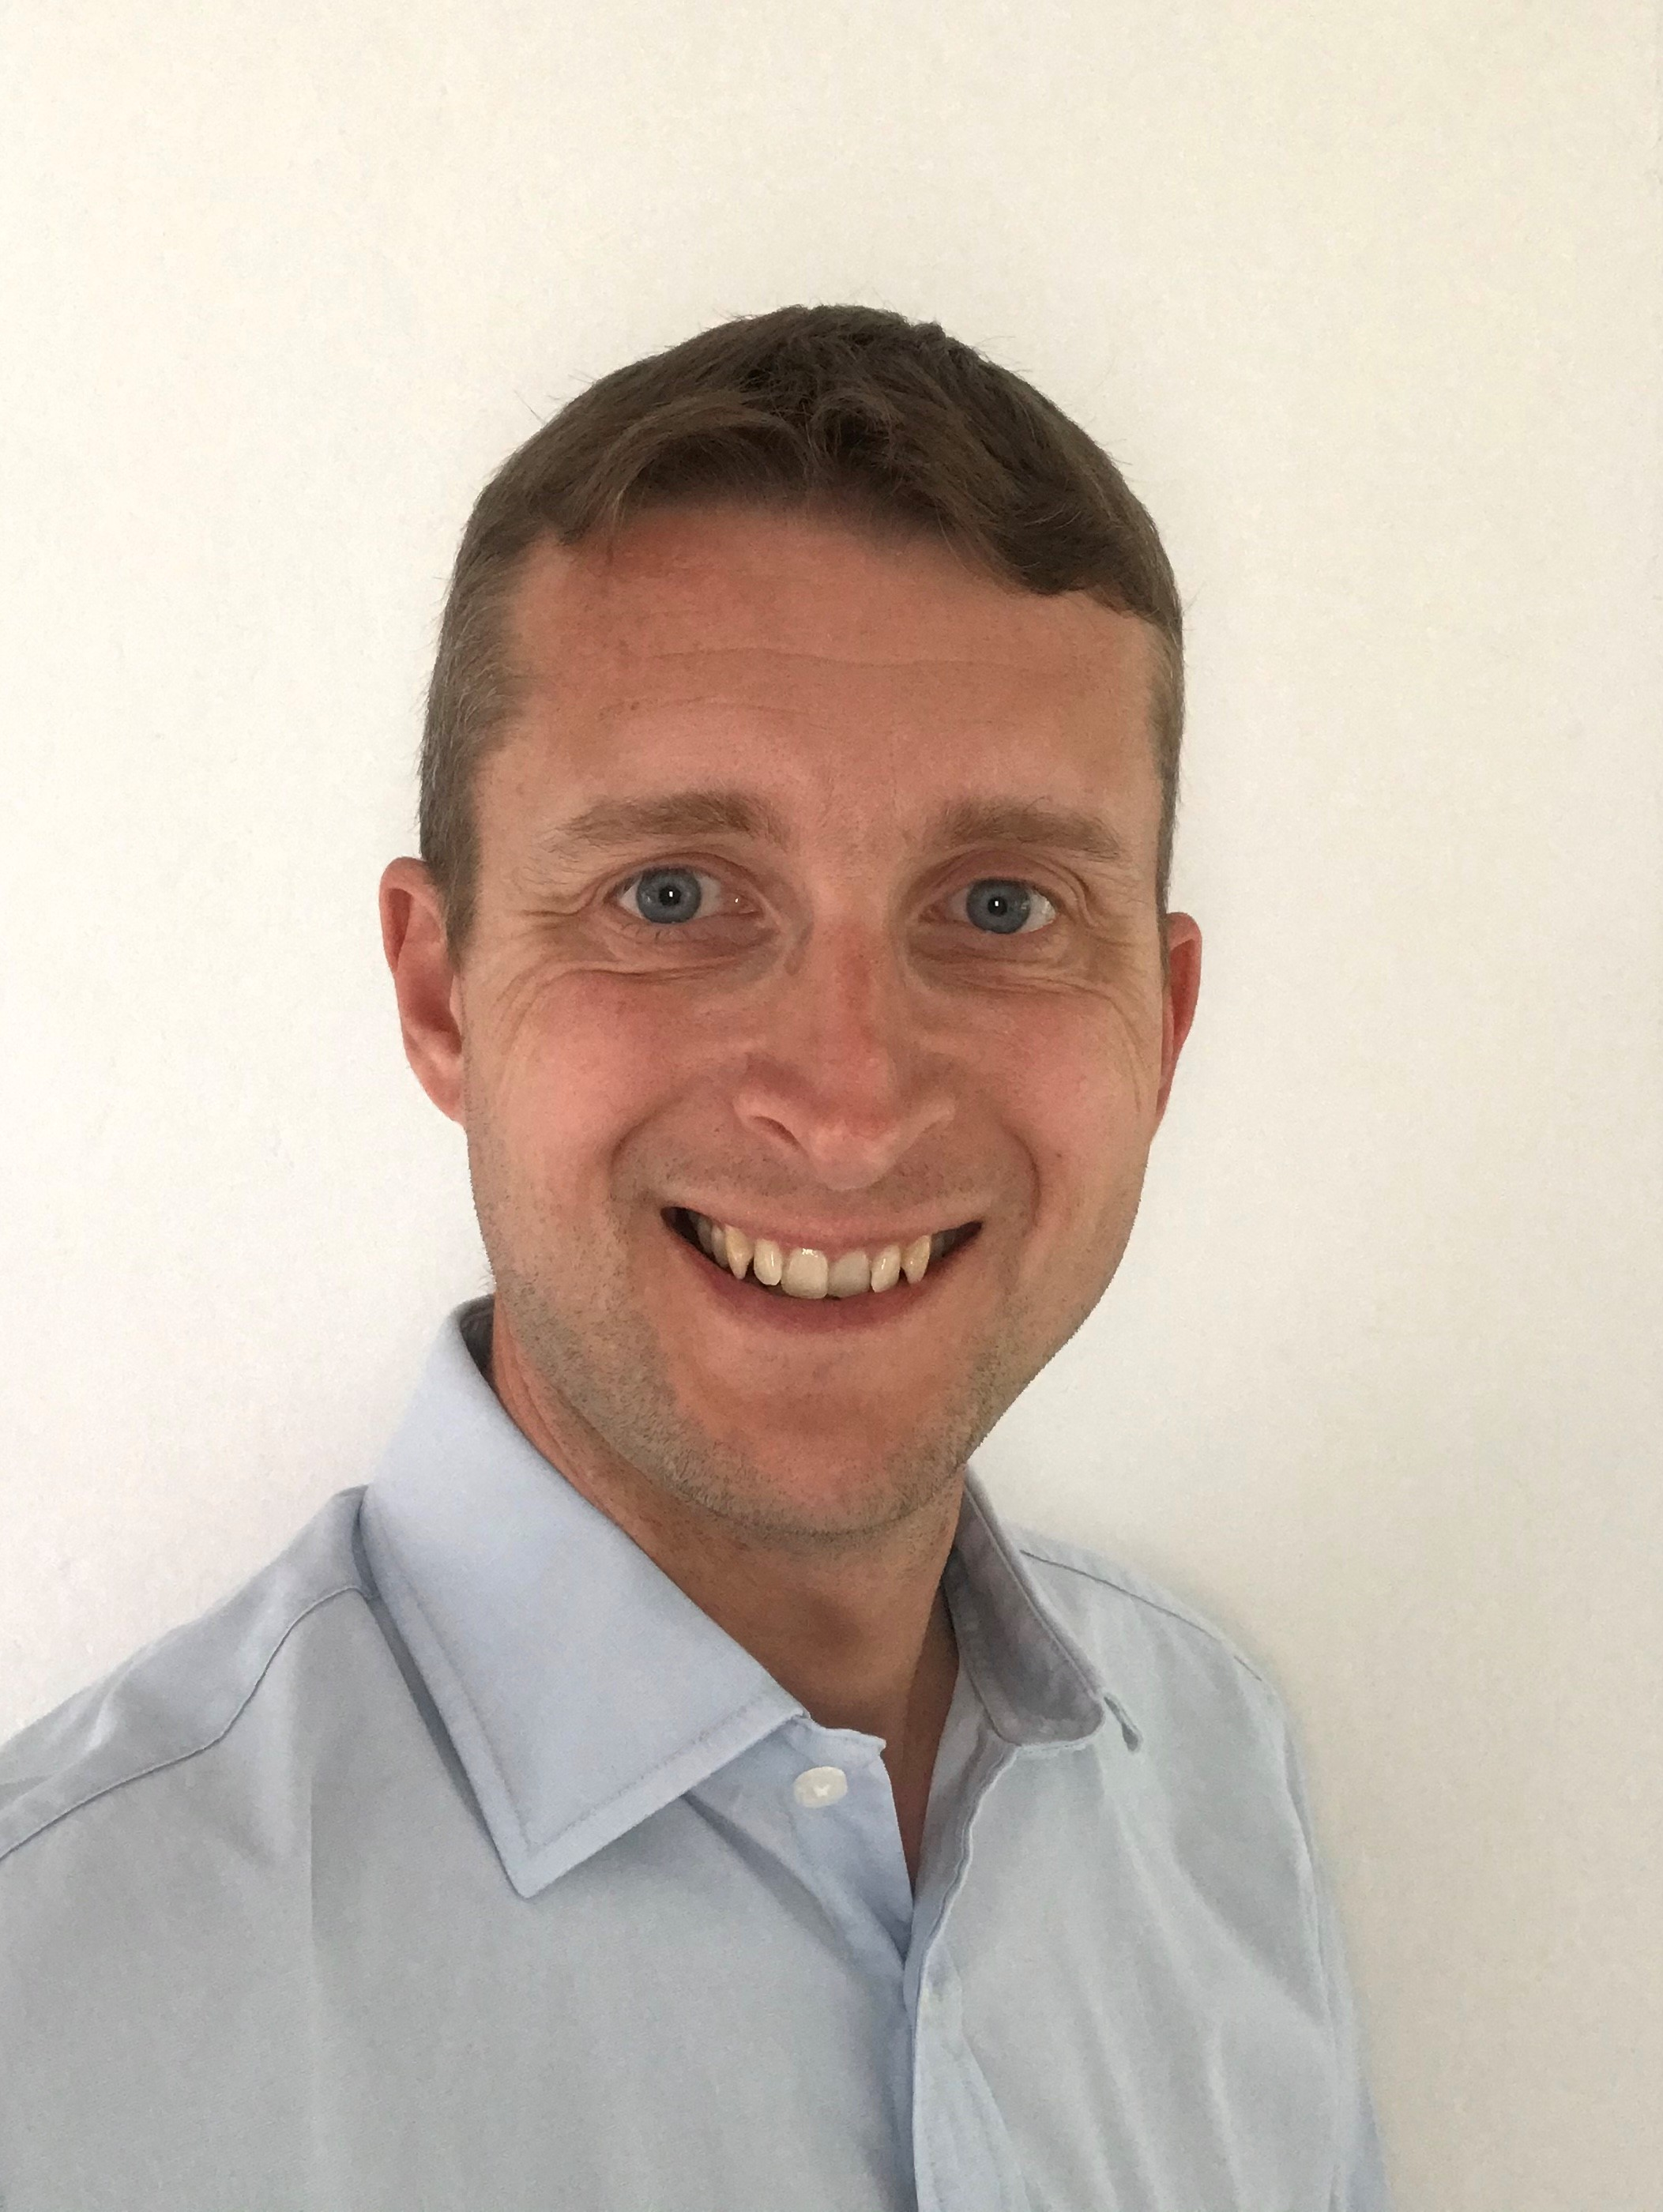 Photo of Neil HOrnby, Cefas' new CEO